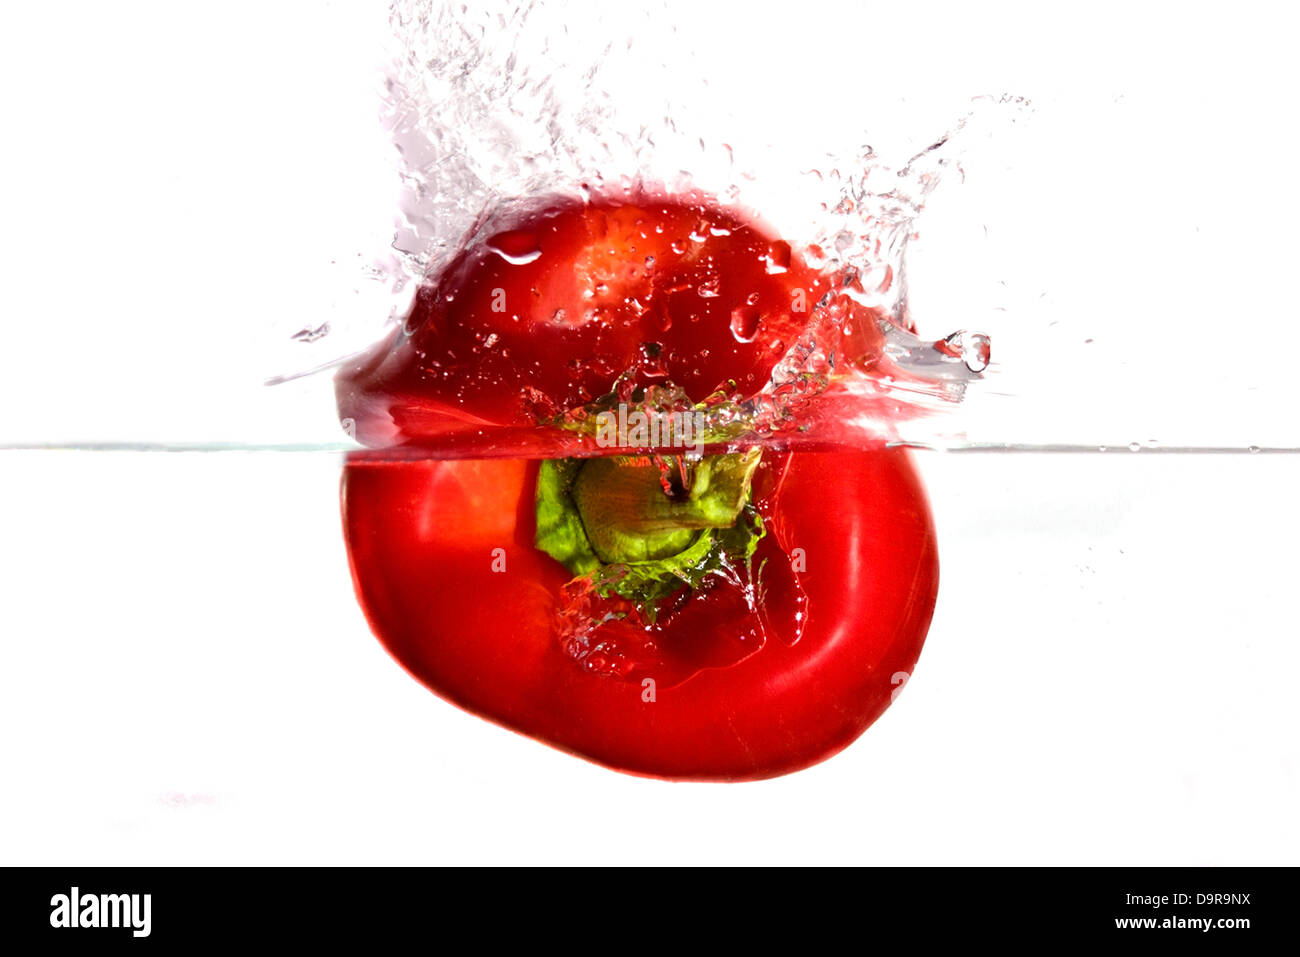 Red pepper plunging in water - Stock Image